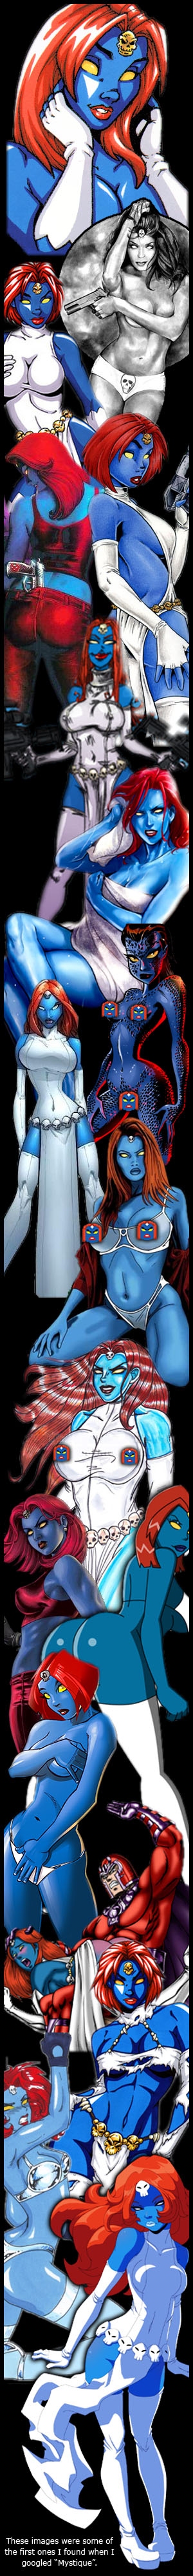 Mystique collage from the Internet